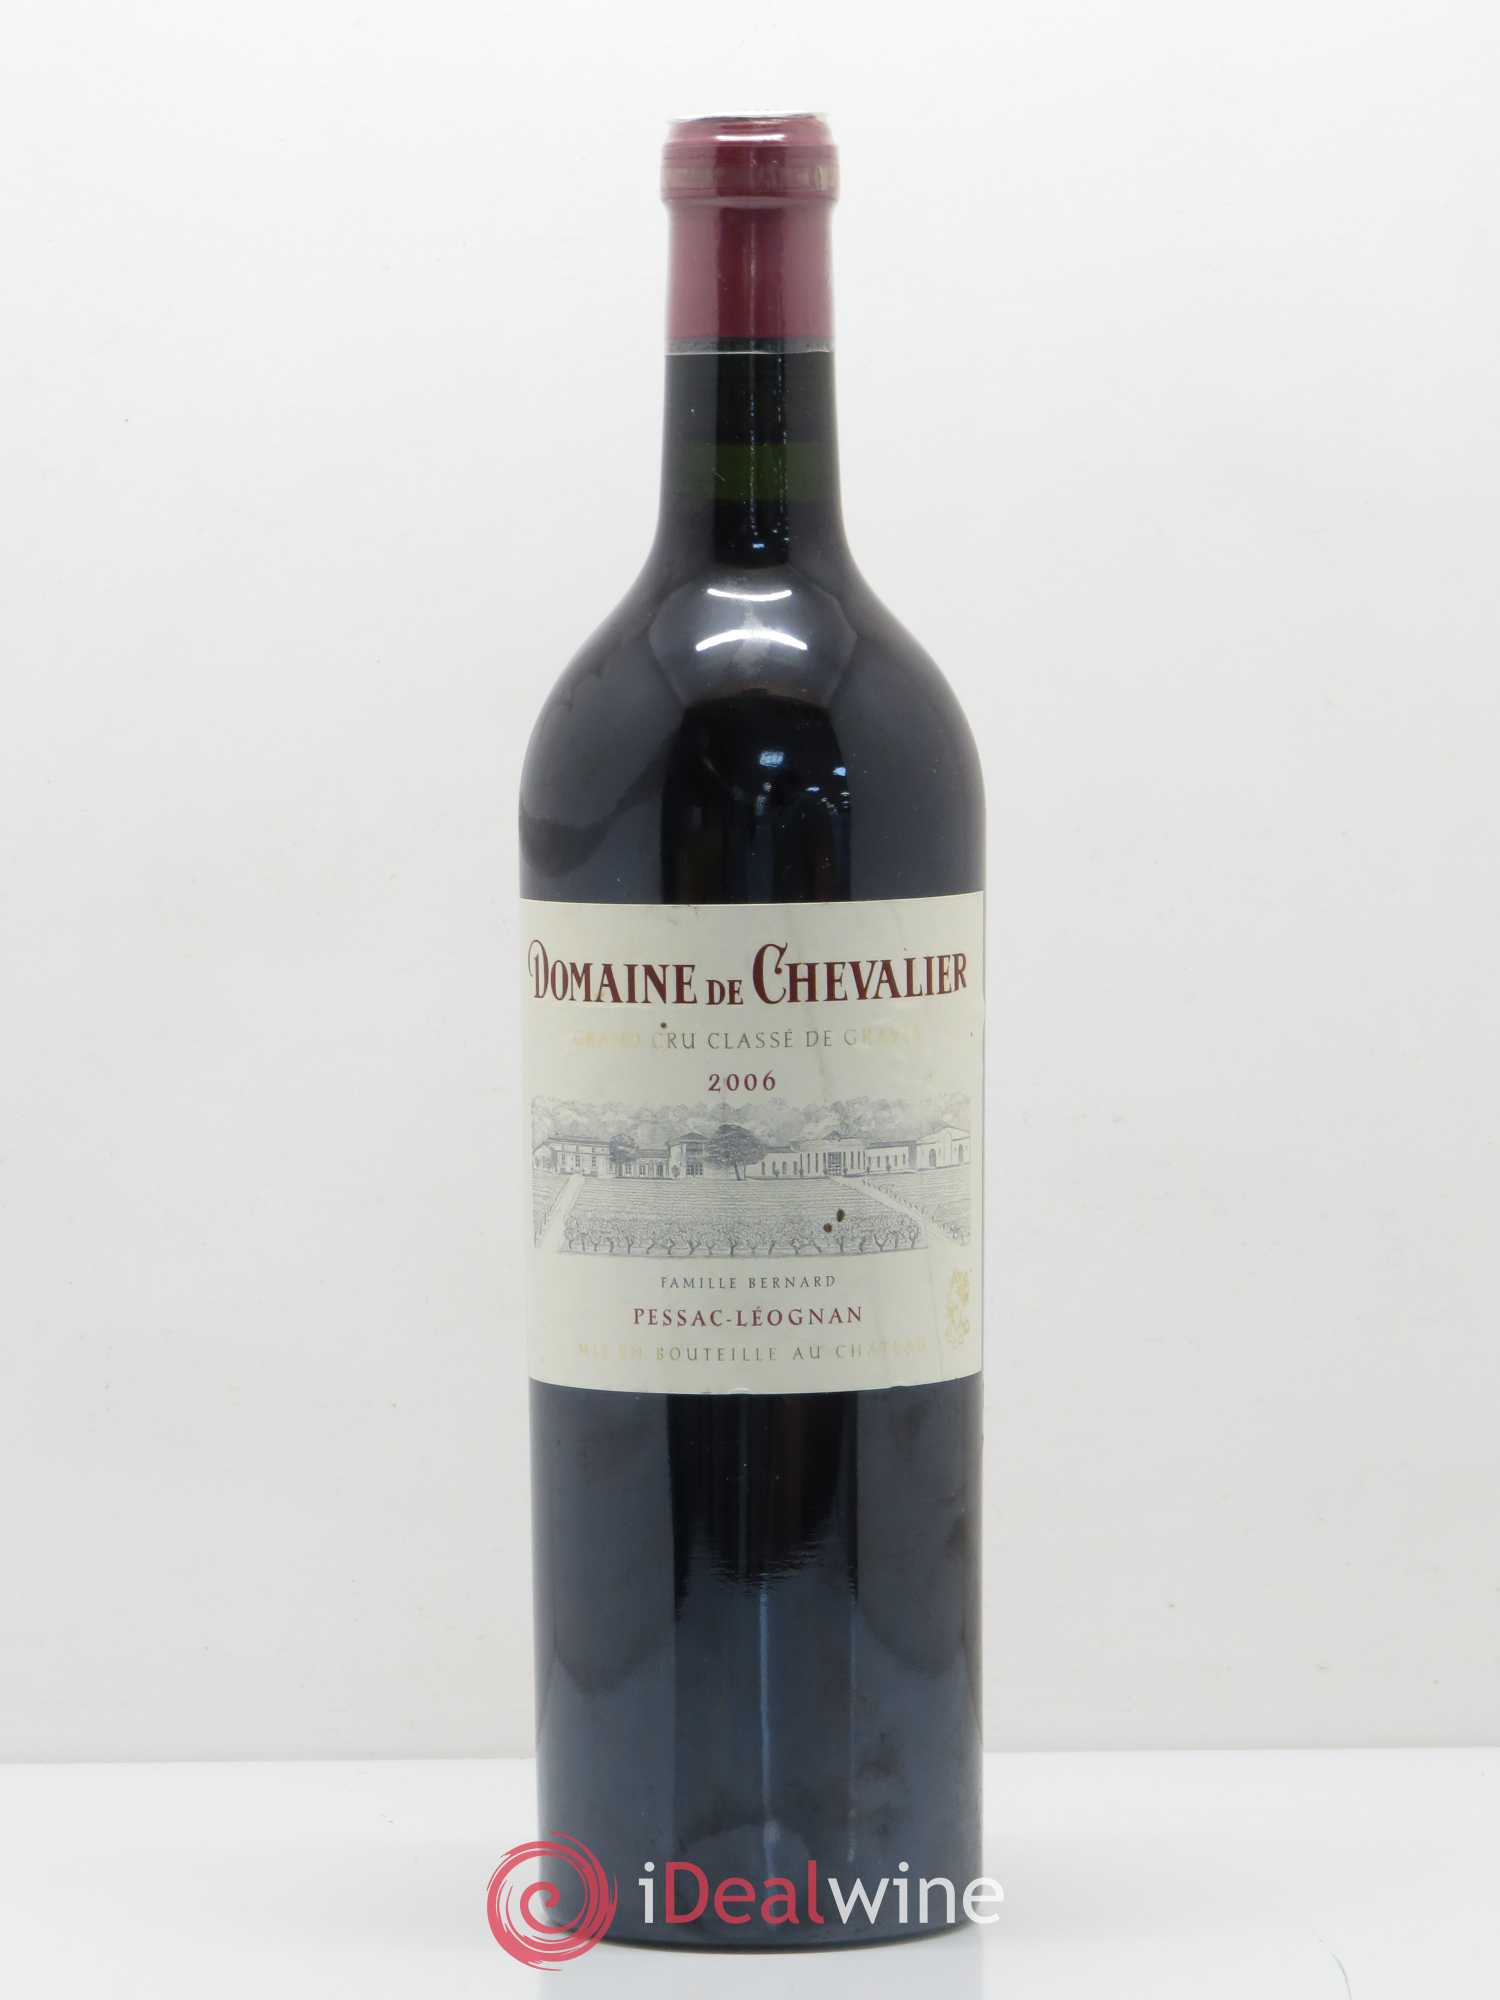 Domaine de Chevalier Cru Classé de Graves  2006 - Lot of 1 Bottle